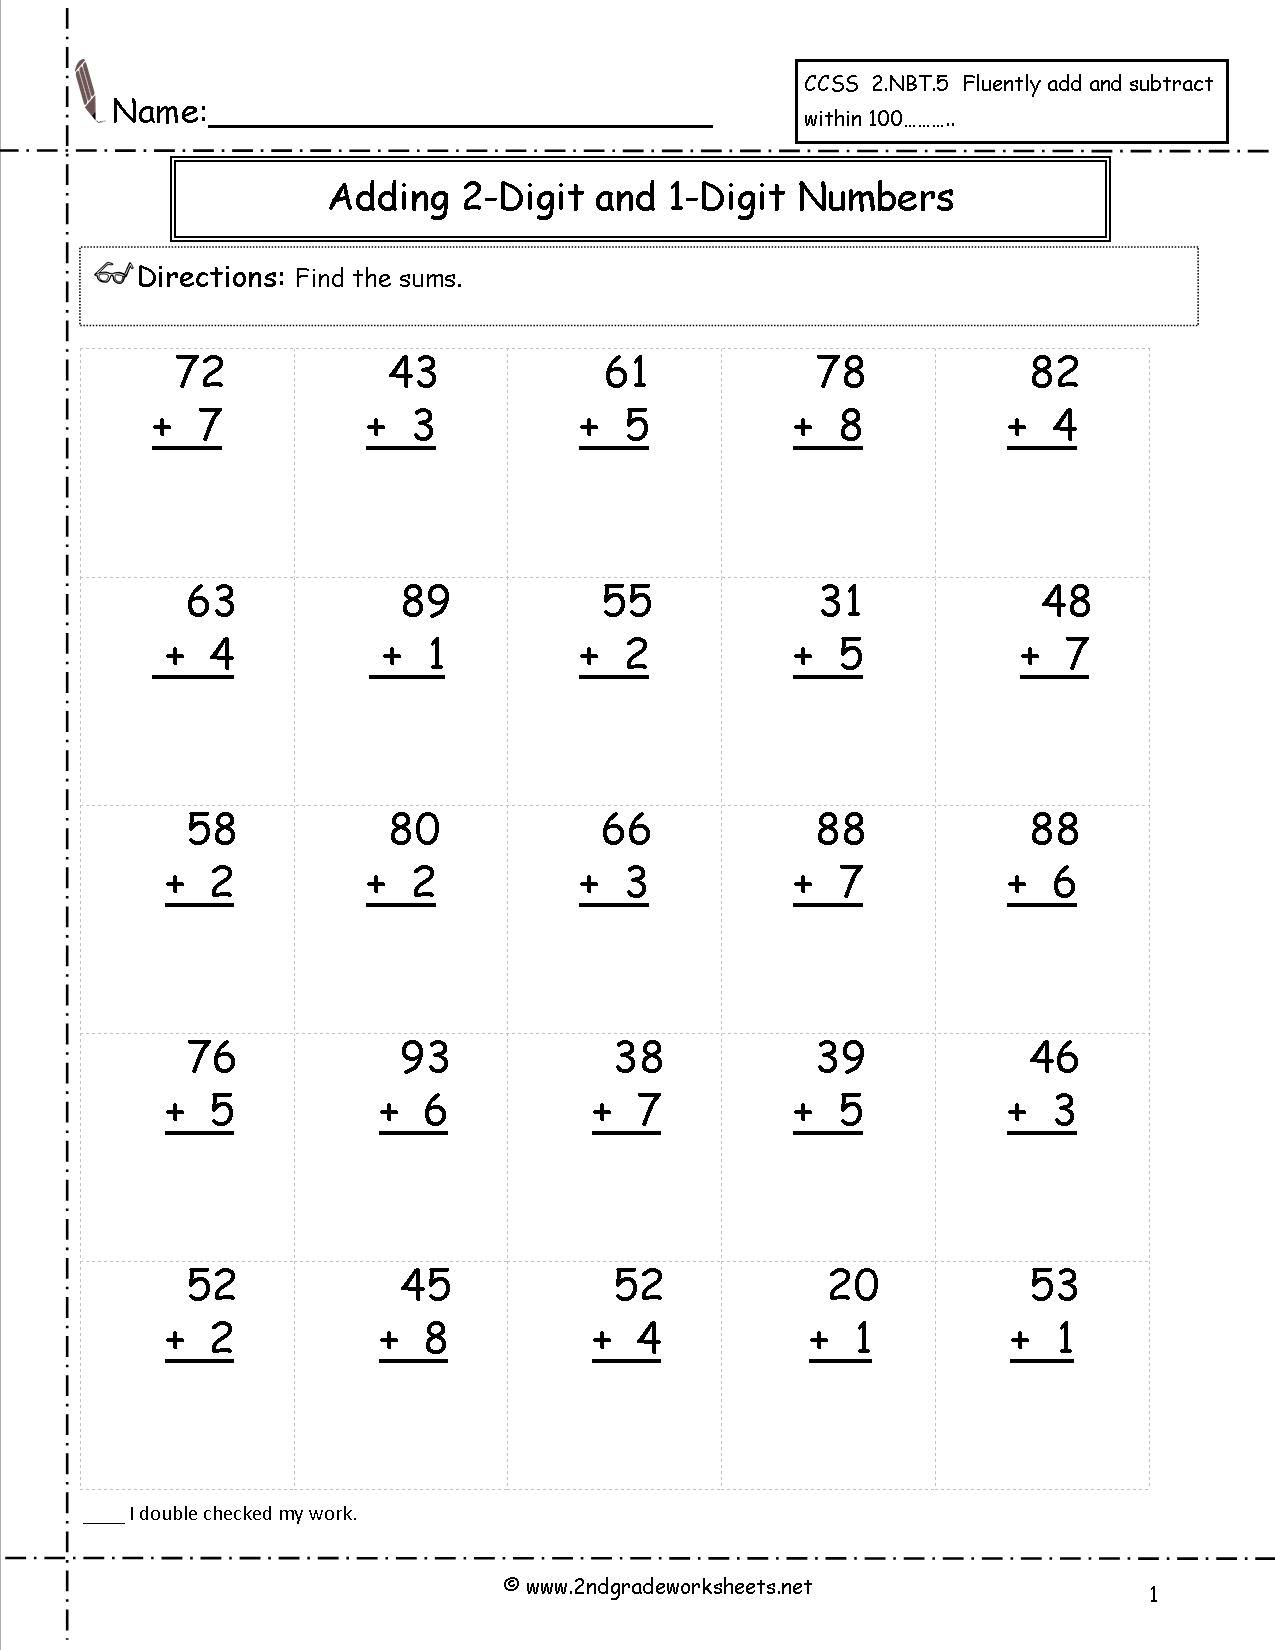 Adding Two Digit And One Digit Numbers   Satta   Pinterest - Free Printable Two Digit Addition Worksheets